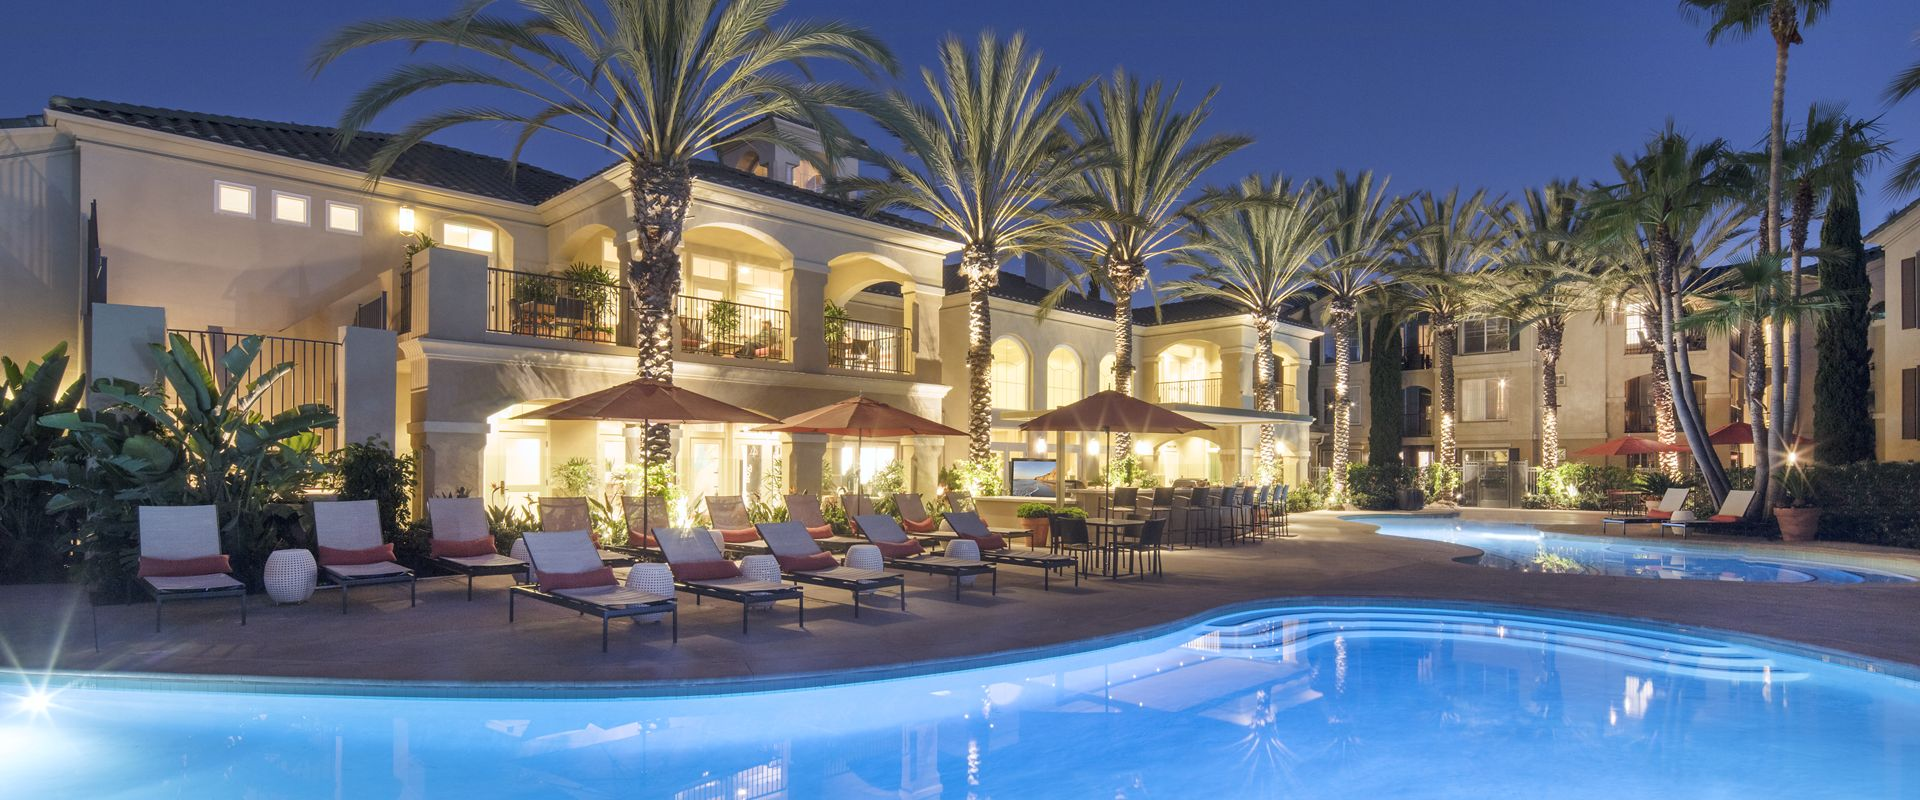 Apartments in San Diego For Rent - Irvine Company Apartments